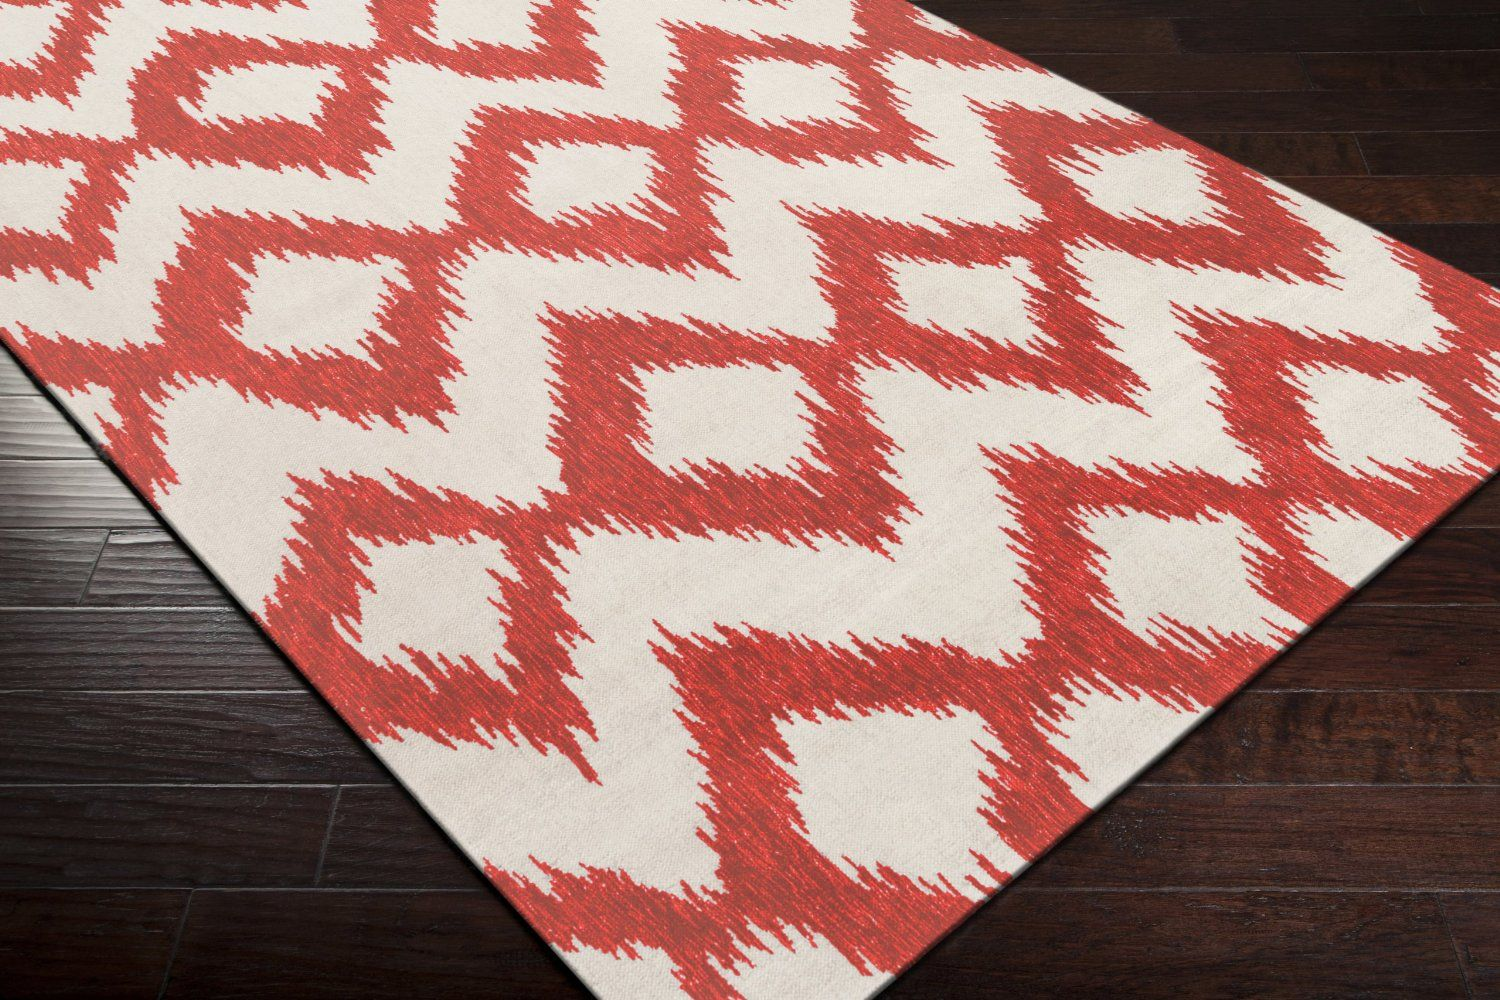 Woven 100 Wool Poppy Red 5 X 8 Global Area Rug Machine Made Rugs Wool Area Rugs Colorful Rugs Flat Weave Rug